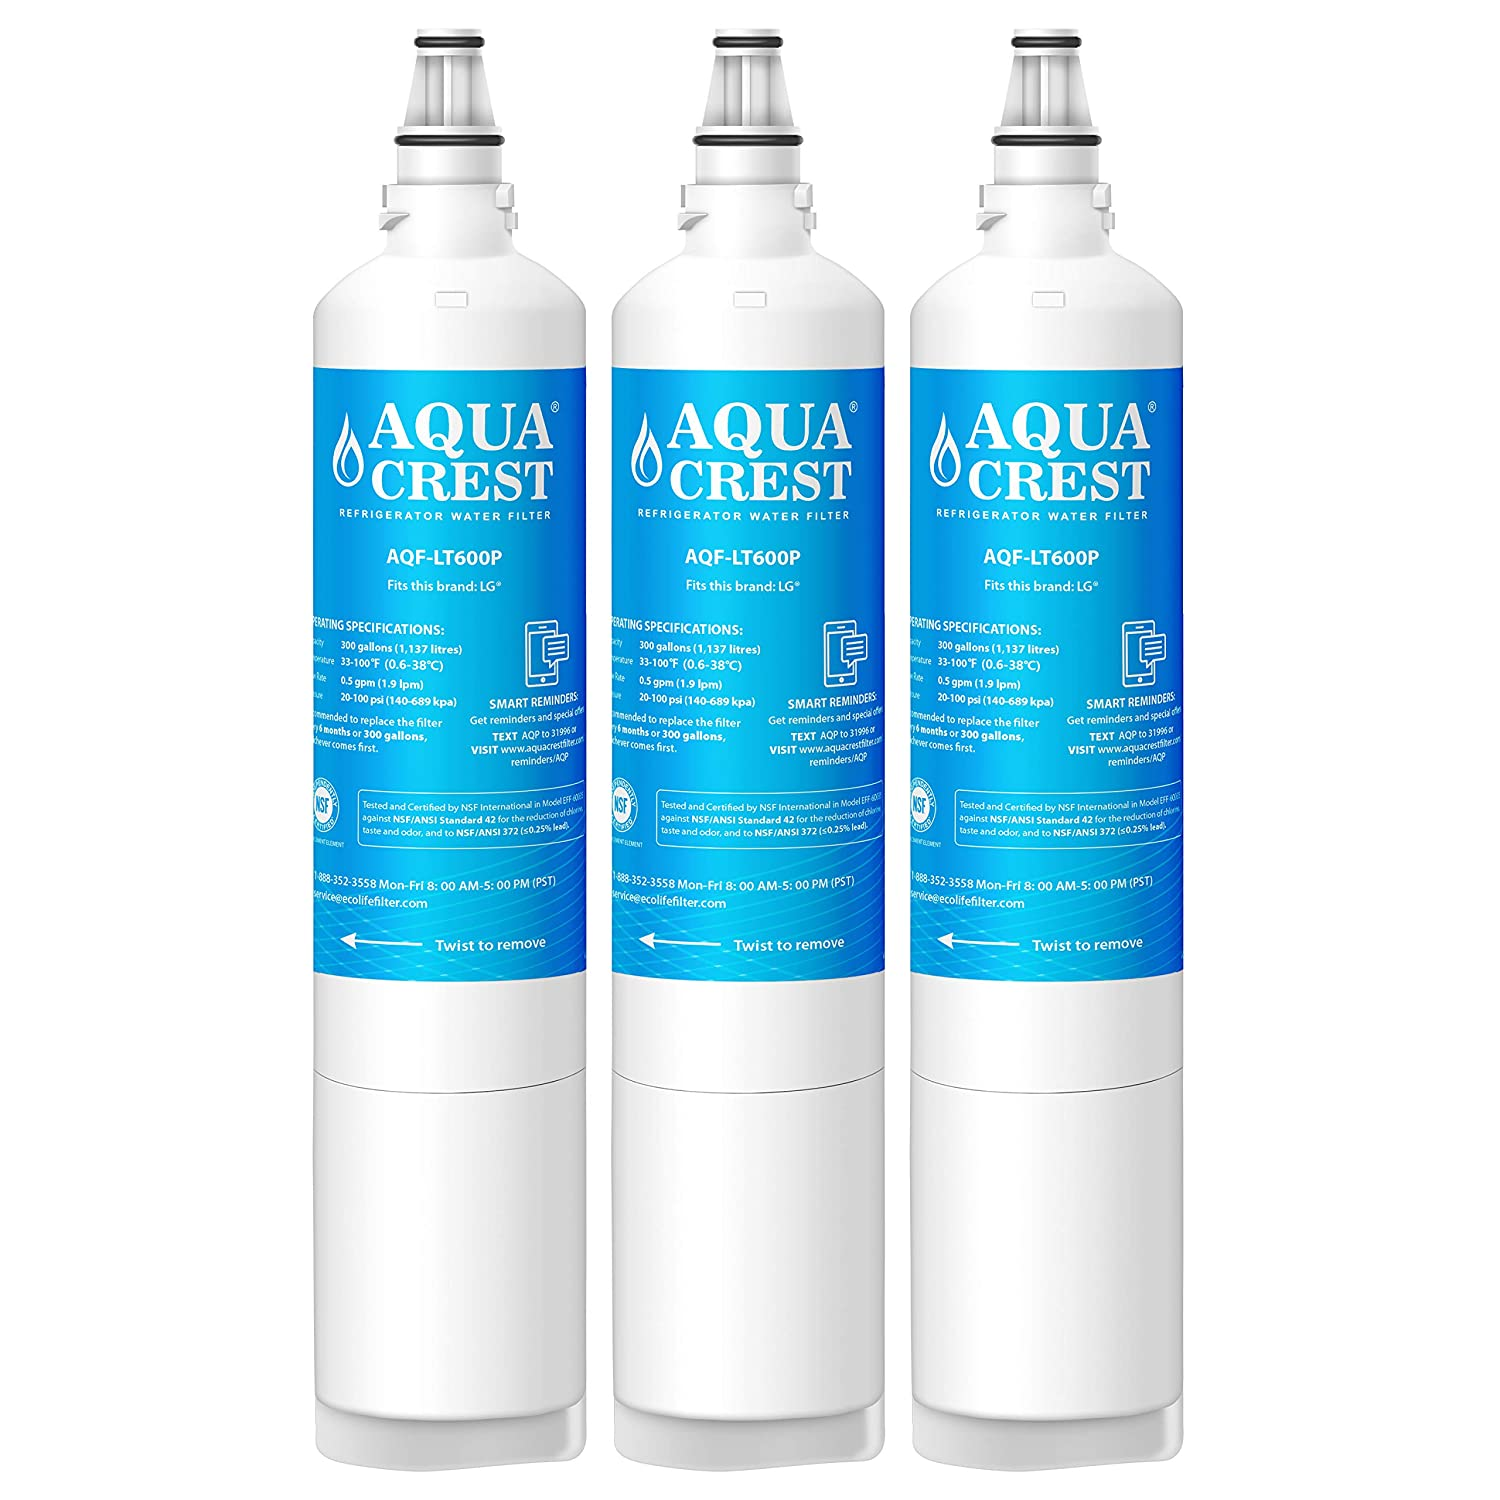 AQUACREST LT600P Replacement Refrigerator Water Filter, Compatible with LG LT600P, 5231JA2006B, 5231JA2006A, KENMORE 46-9990, 9990 (Pack of 3)